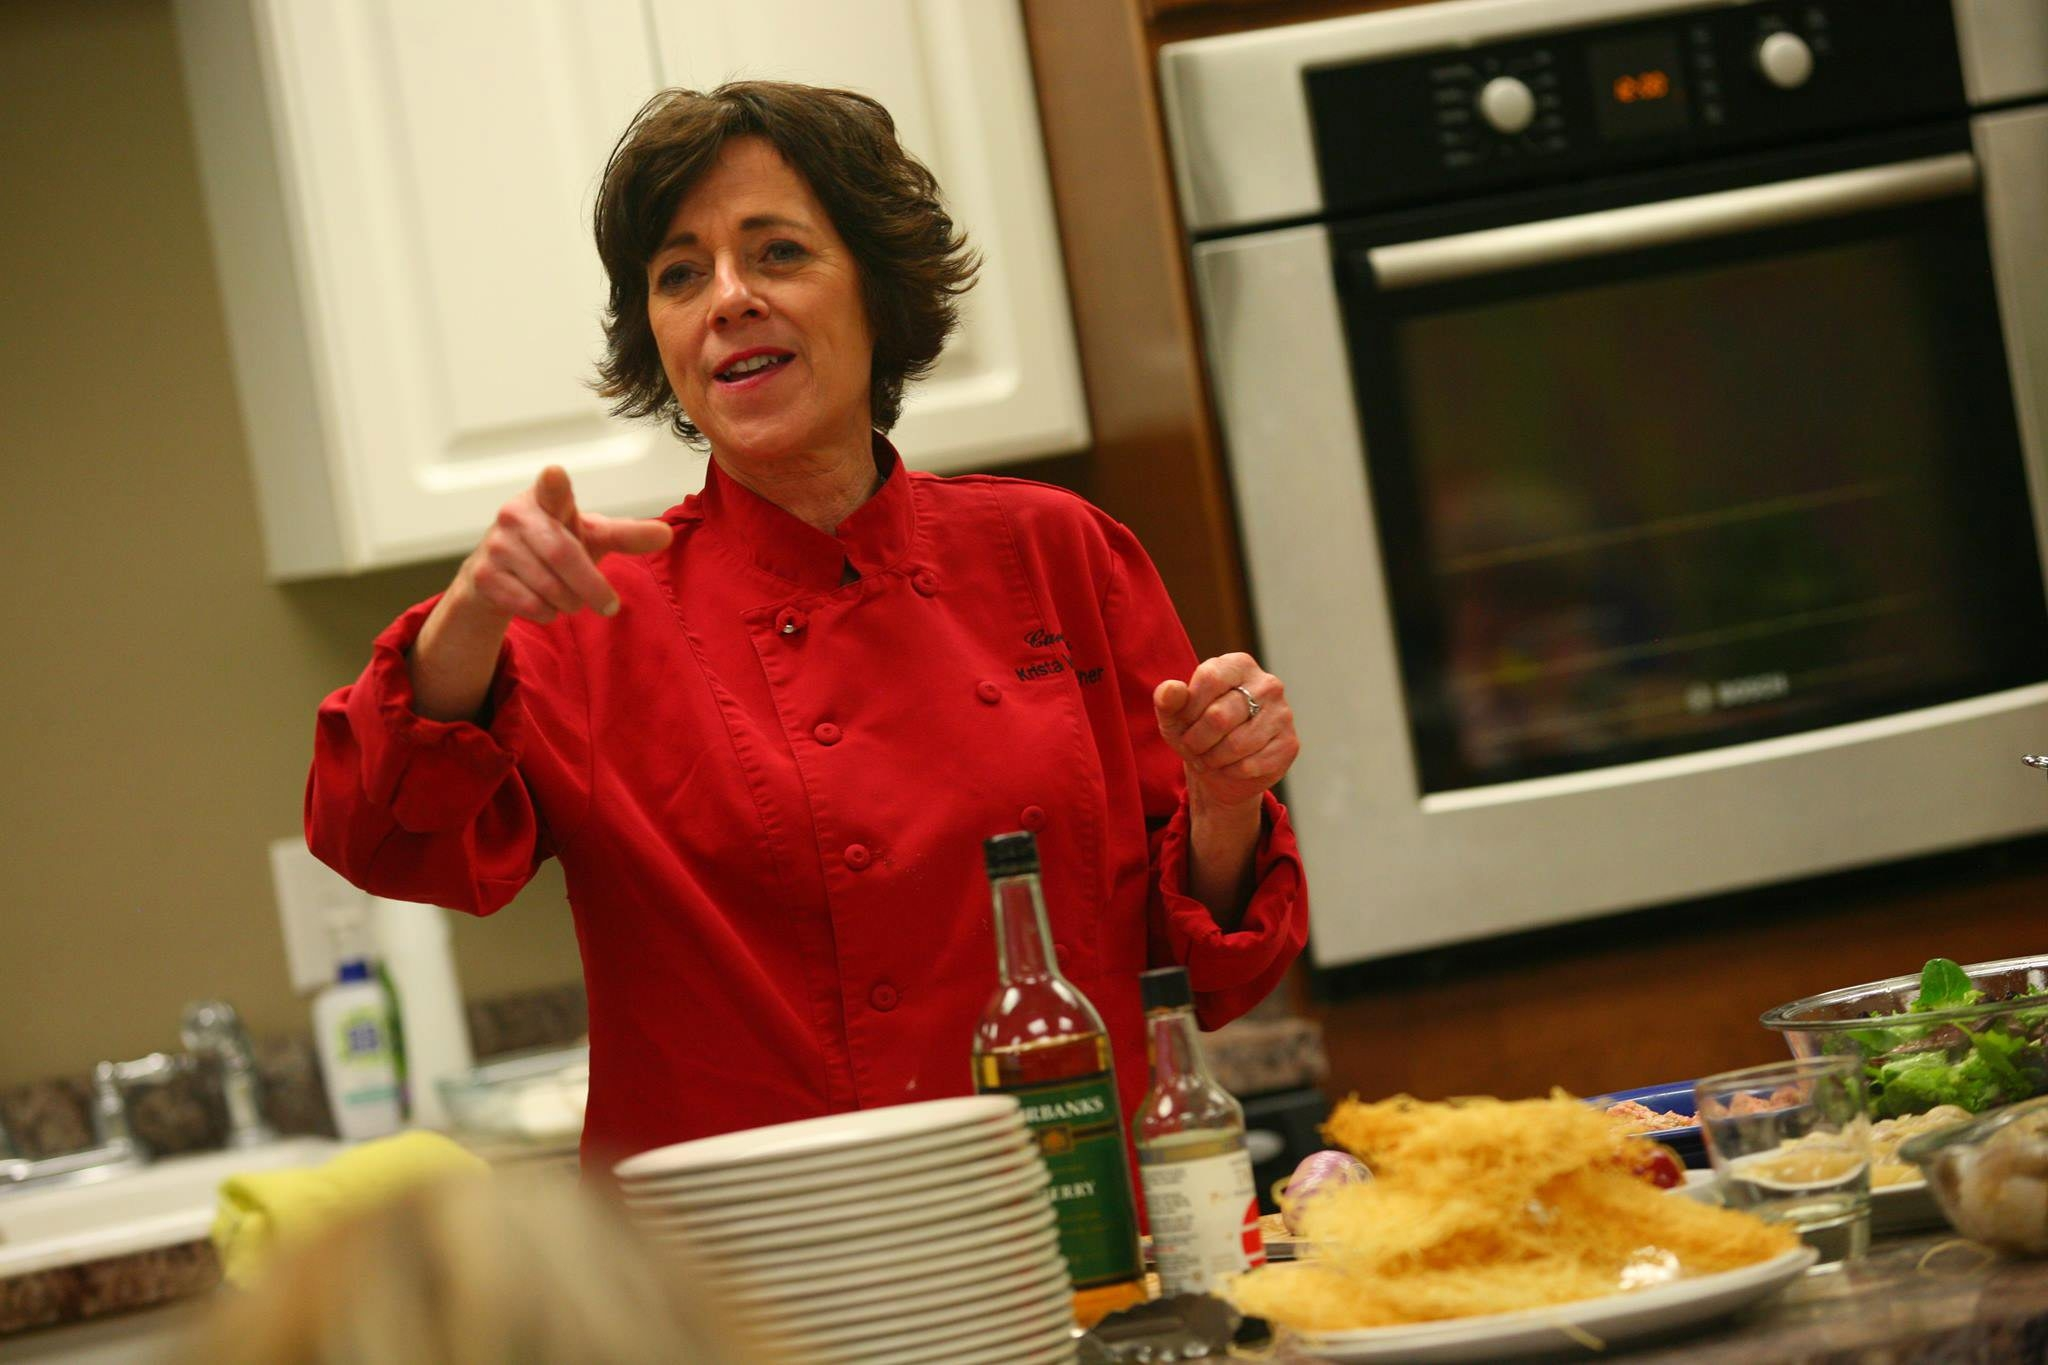 Chef Krista Van Wagner, former co-owner of Curly's, is teaching cooking classes and hawking jerk sauces.